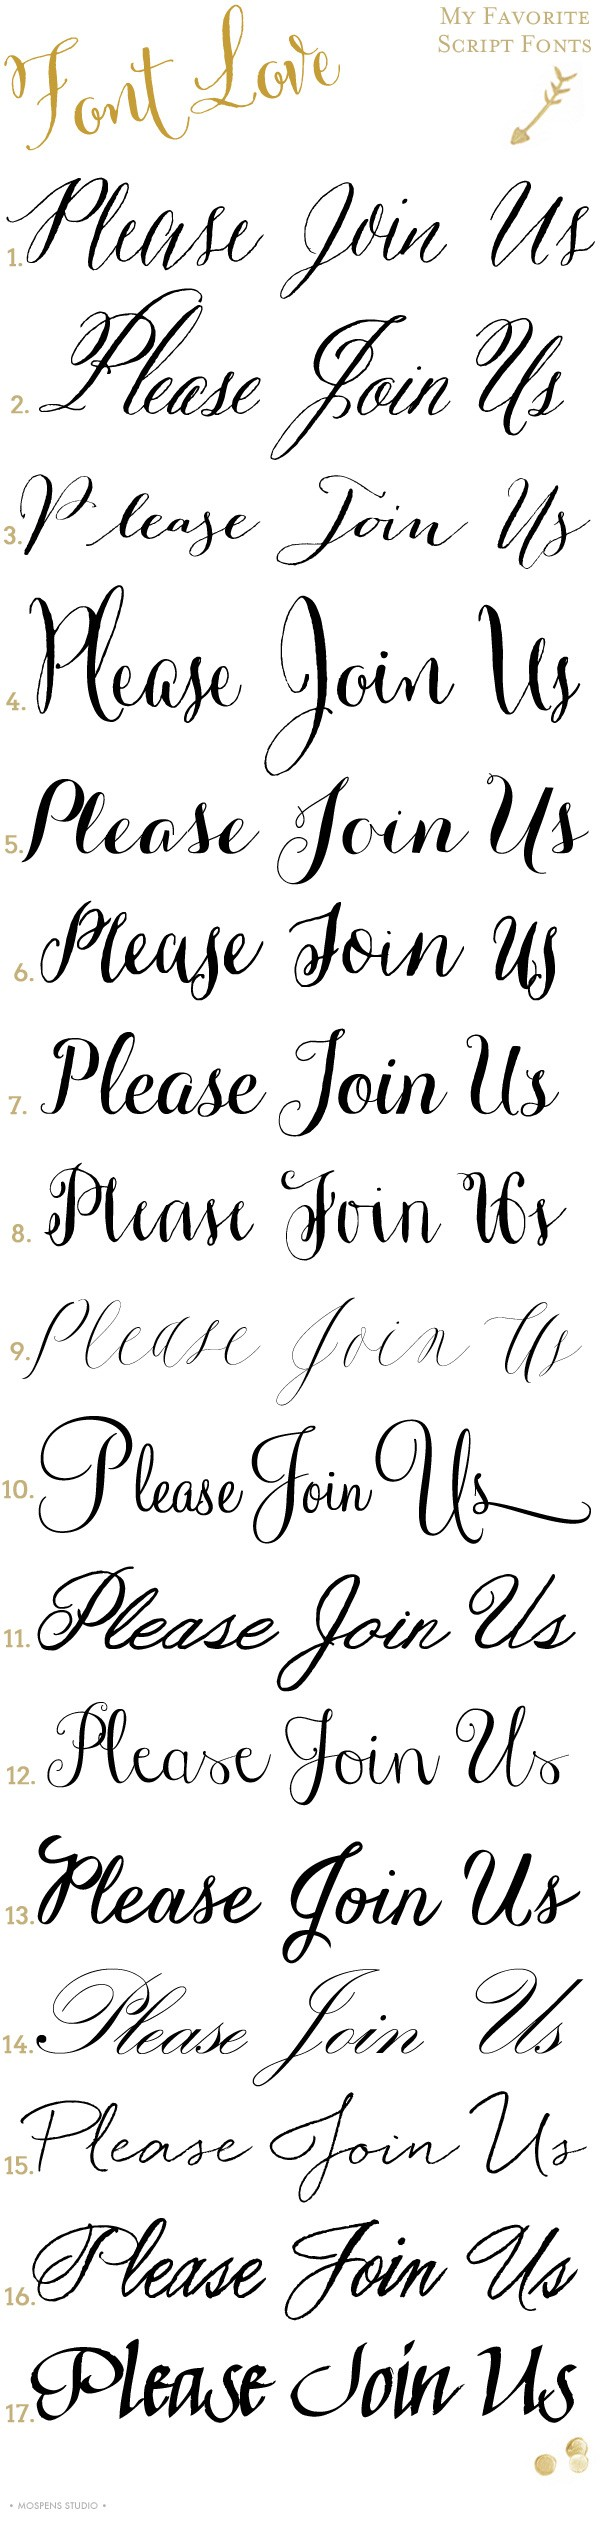 17 Script Fonts you will love for custom invitations by designer Michelle Mospens | www.mospensstudio.com